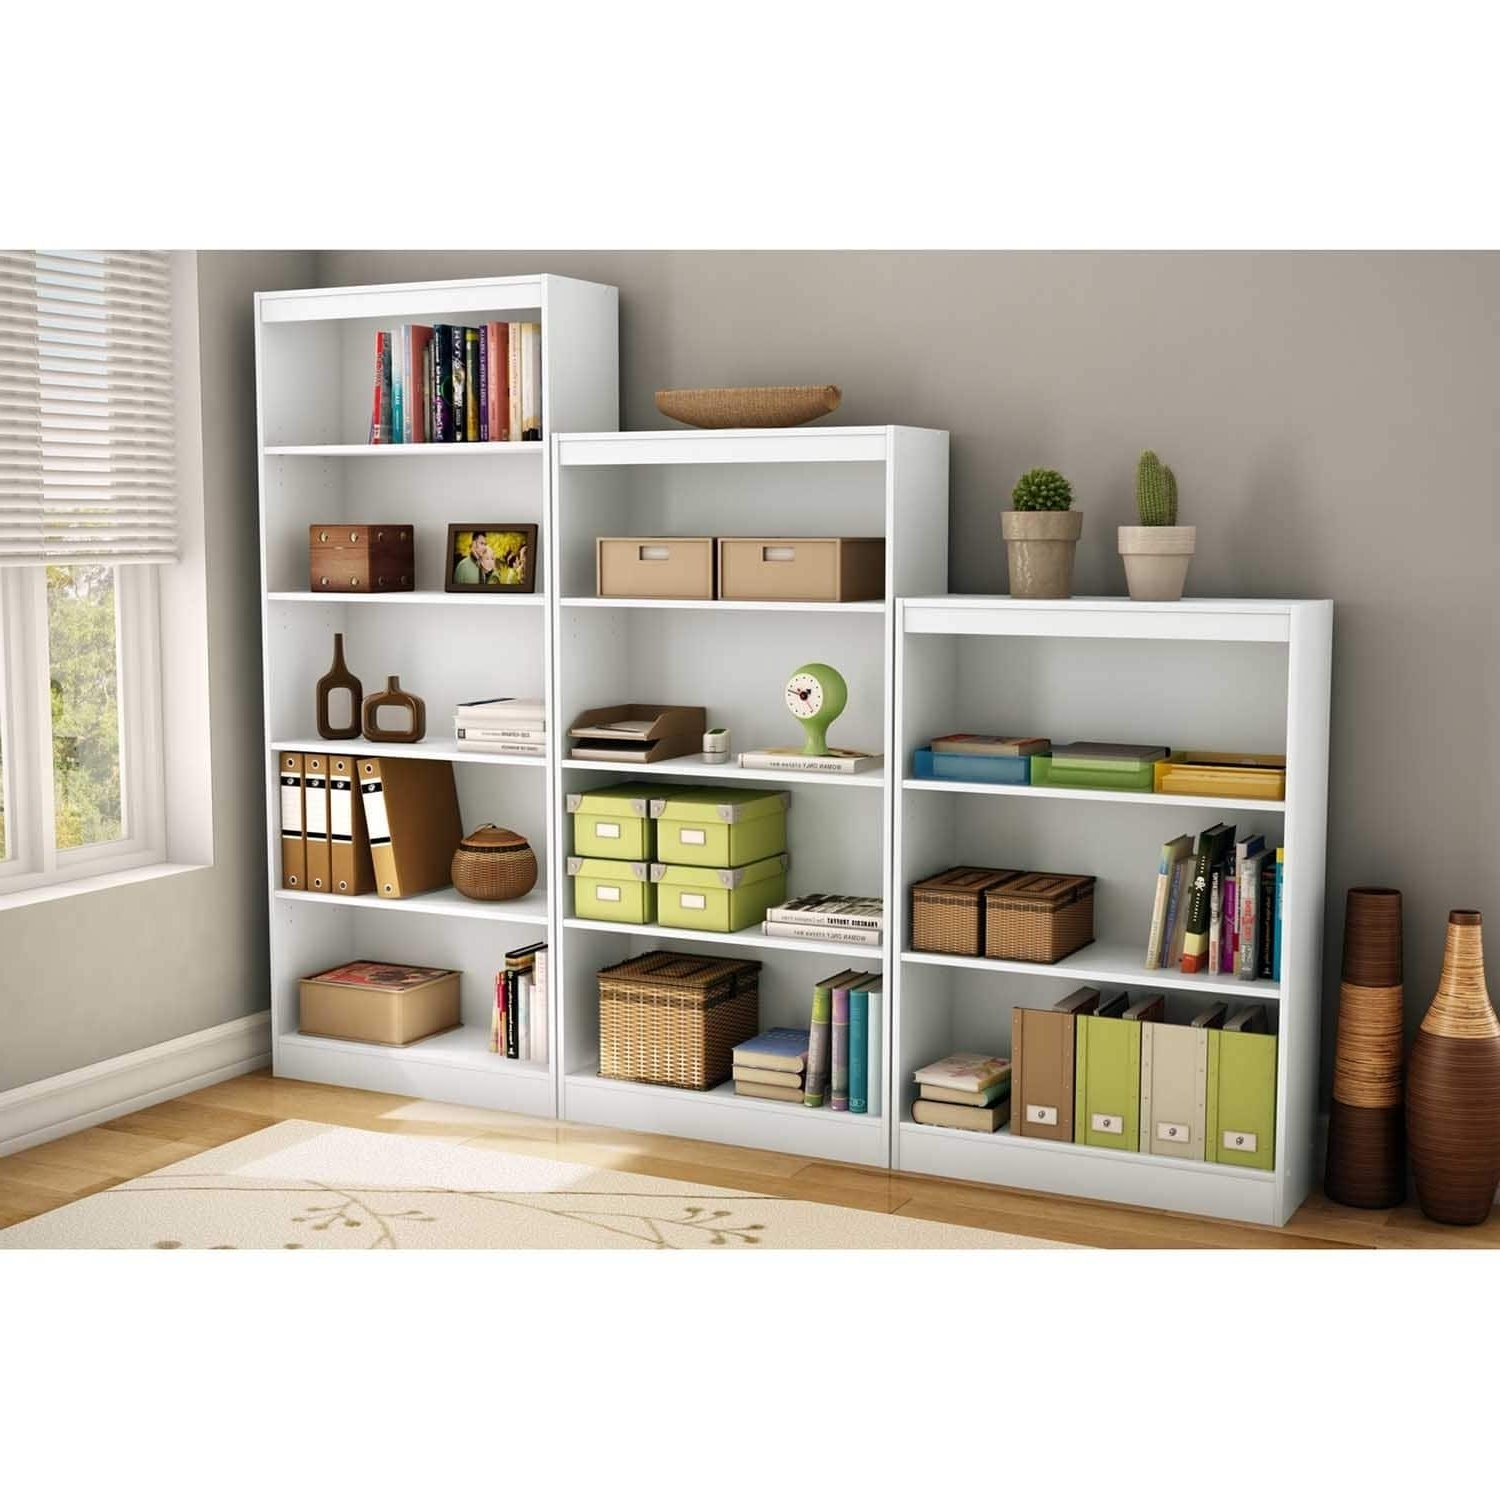 2017 4 Shelf Bookcases Pertaining To South Shore Pure White Axess 4 Shelf Bookcase – Free Shipping (View 12 of 15)